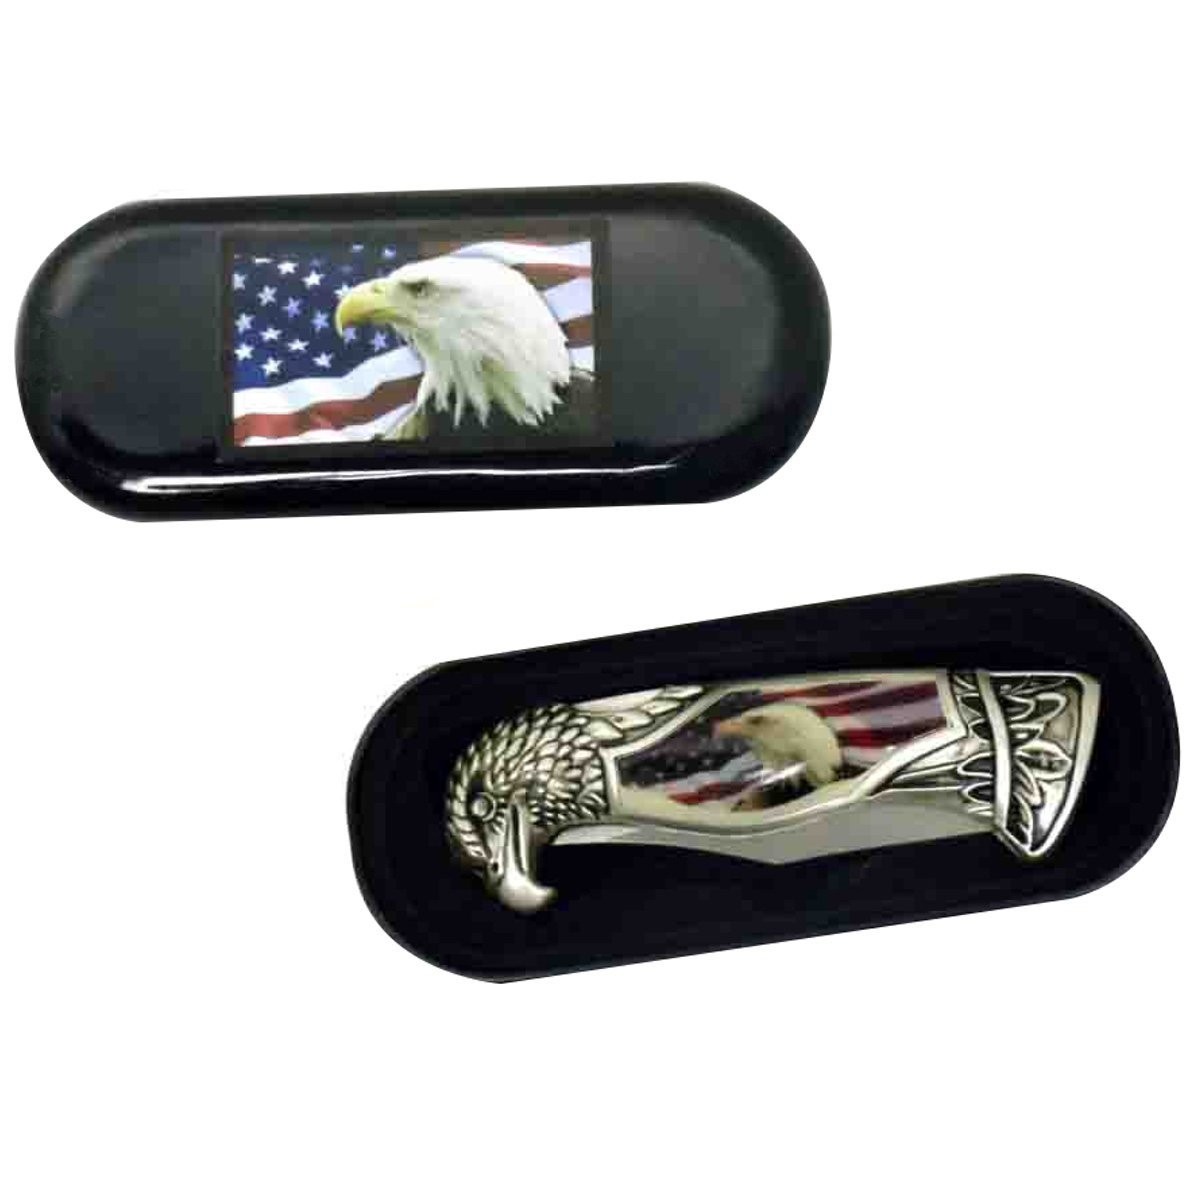 USA Flag & American Bald Eagle Head Shaped Folding Pocket Knife w/ Gift Box Case